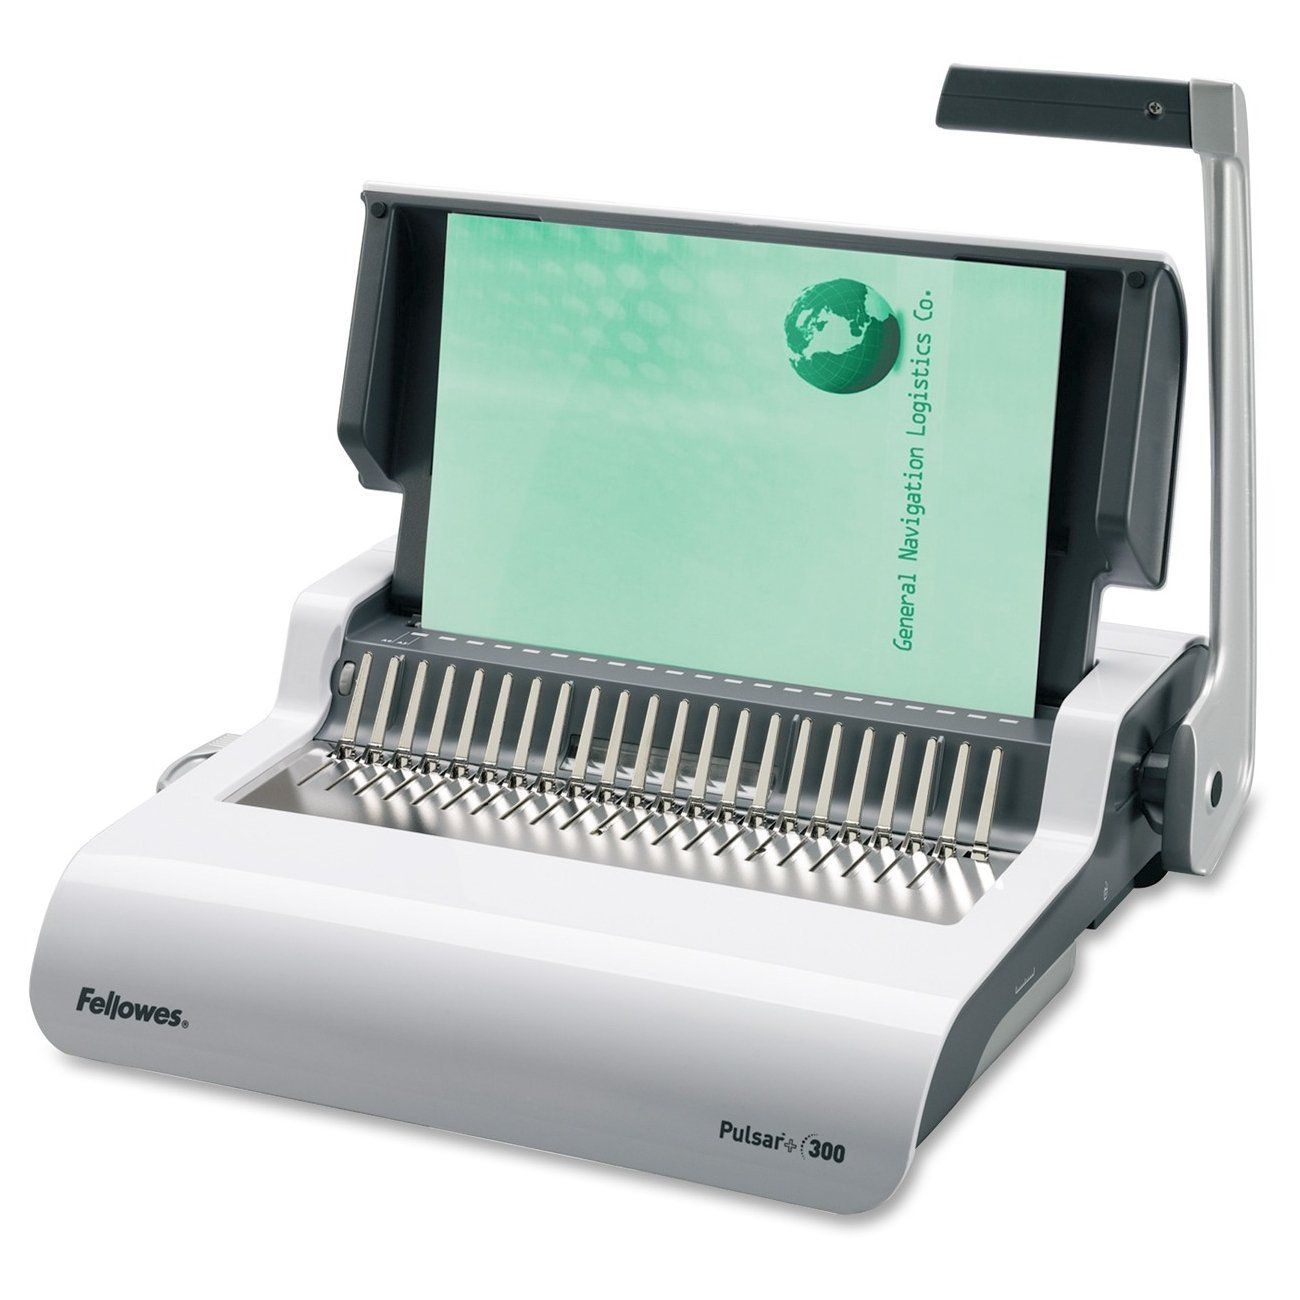 Fellowes Pulsar+ Comb Binding Machine with